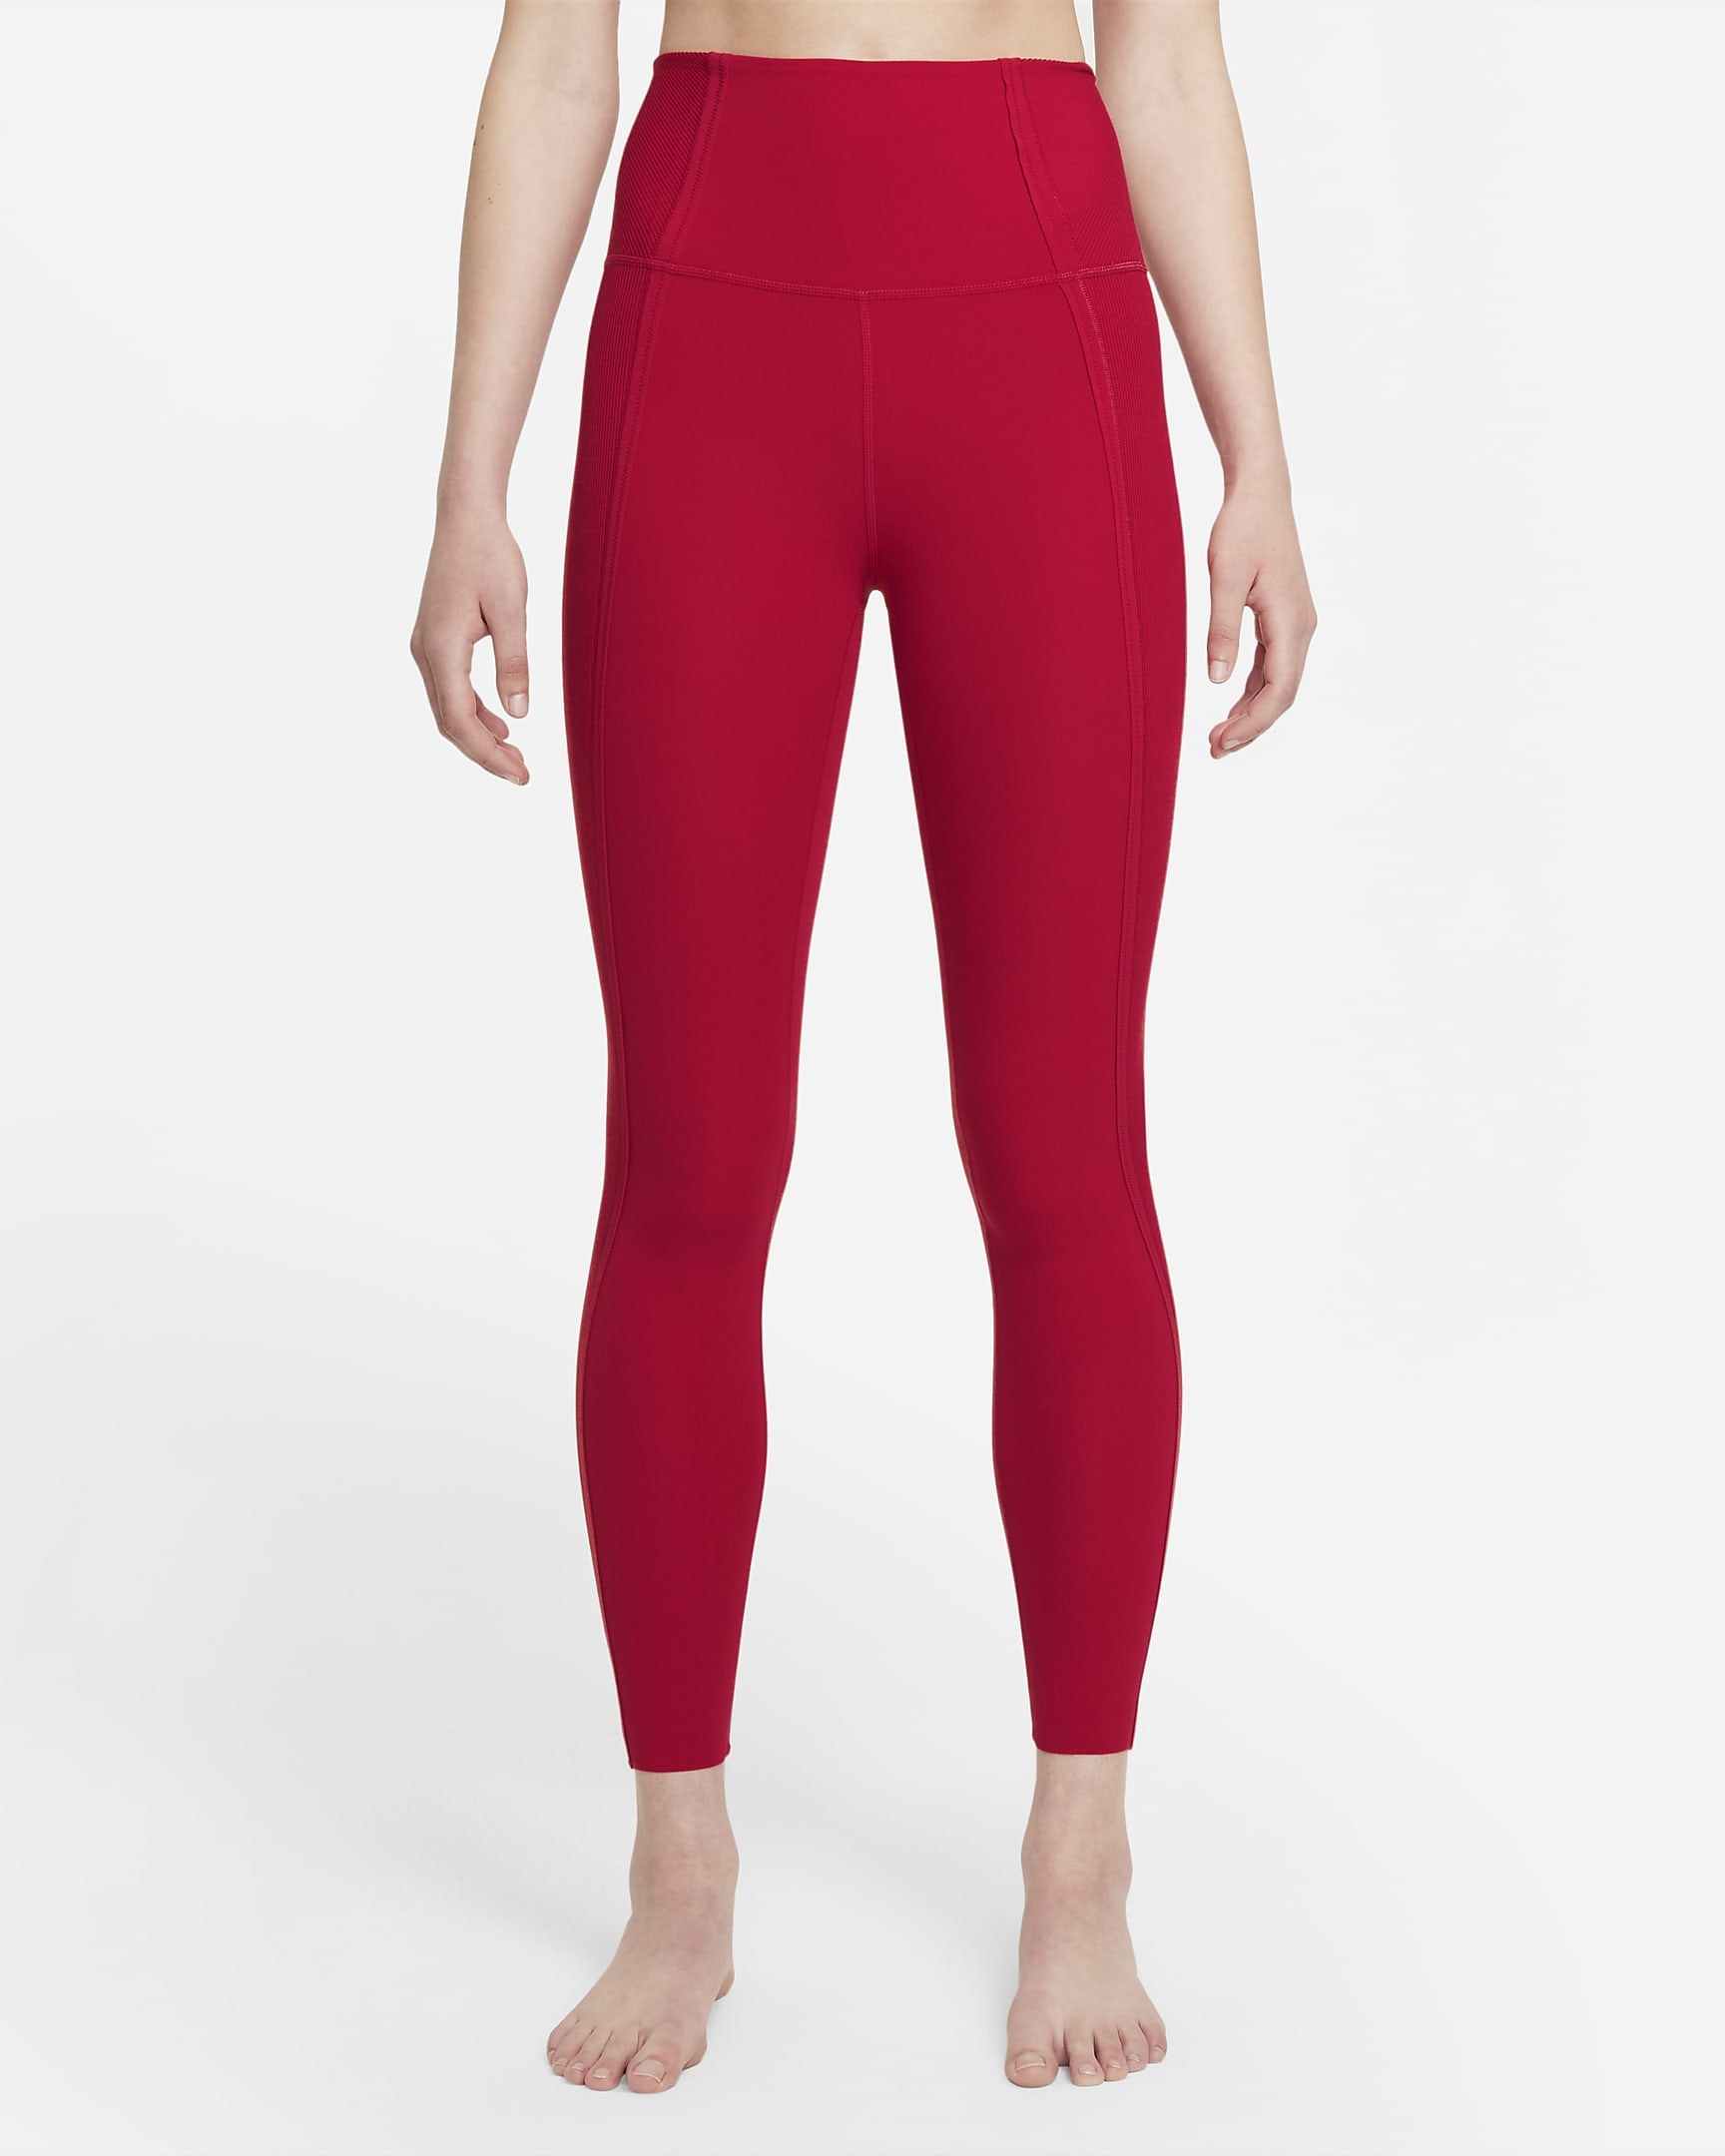 Model wearing high waisted red workout leggings